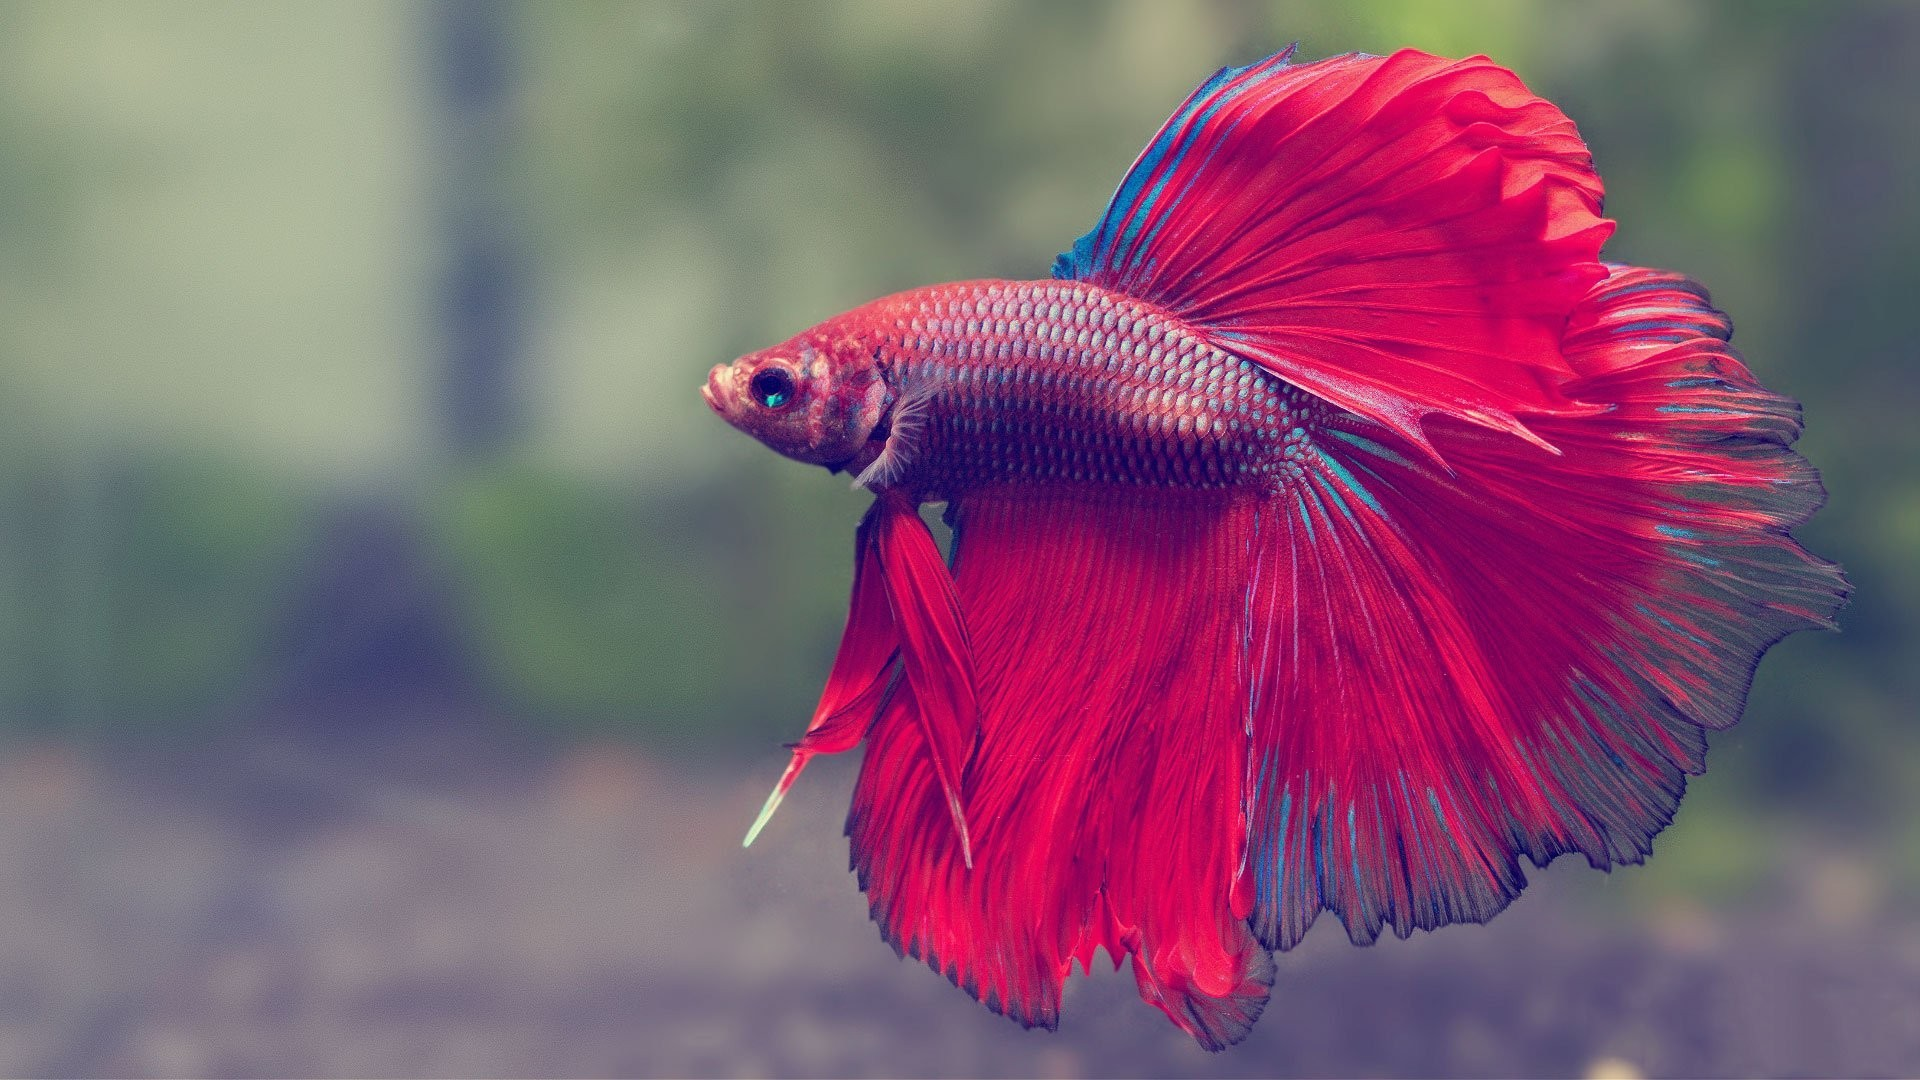 Underwater Tag – Siamese Tropical Betta Fish Fighting Psychedelic  Underwater Best Live Wallpaper Android for HD